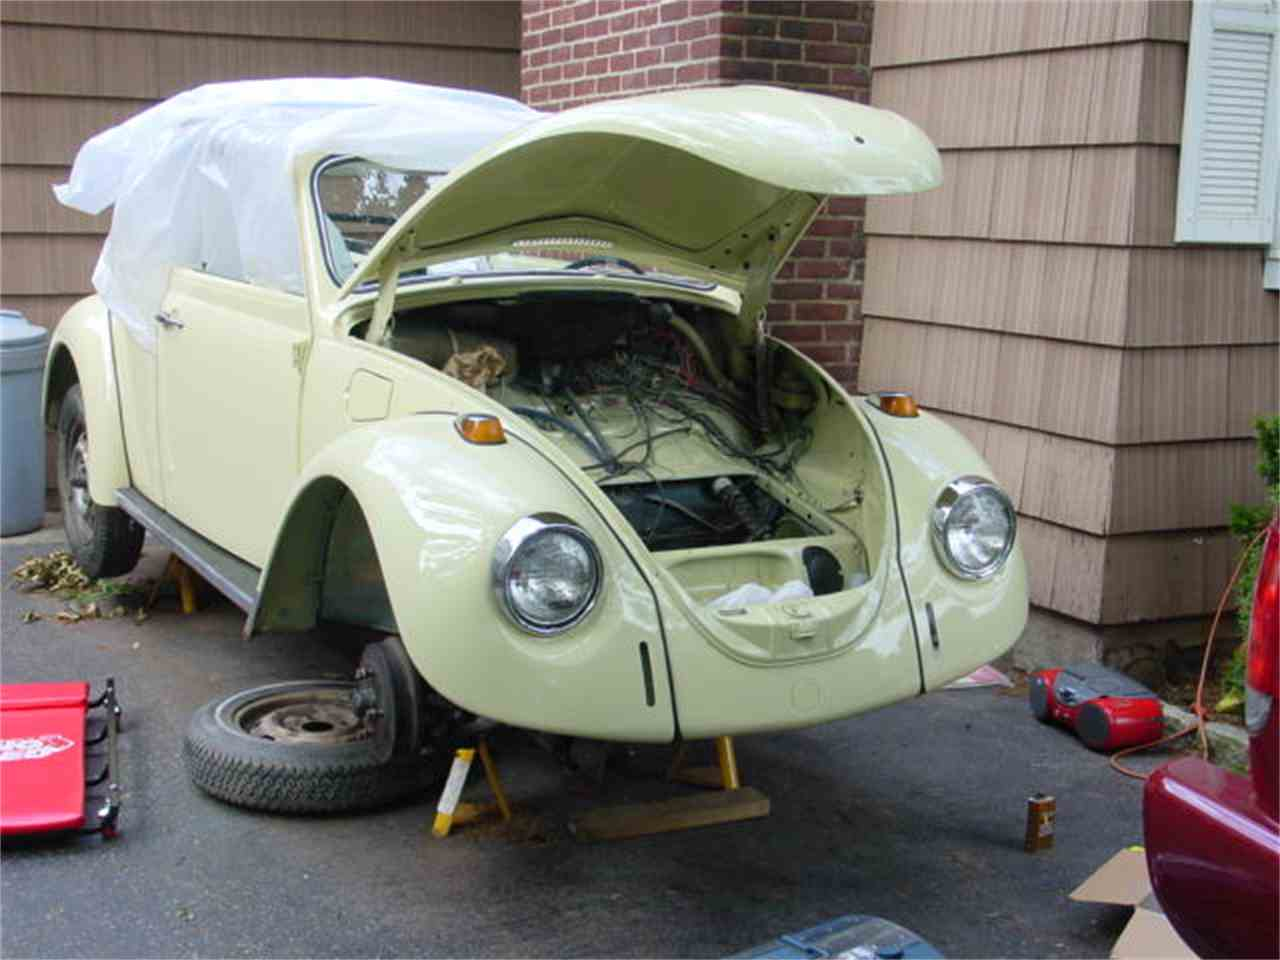 Large Picture of '68 Beetle located in Waxhaw North Carolina - $19,000.00 Offered by a Private Seller - DVTX